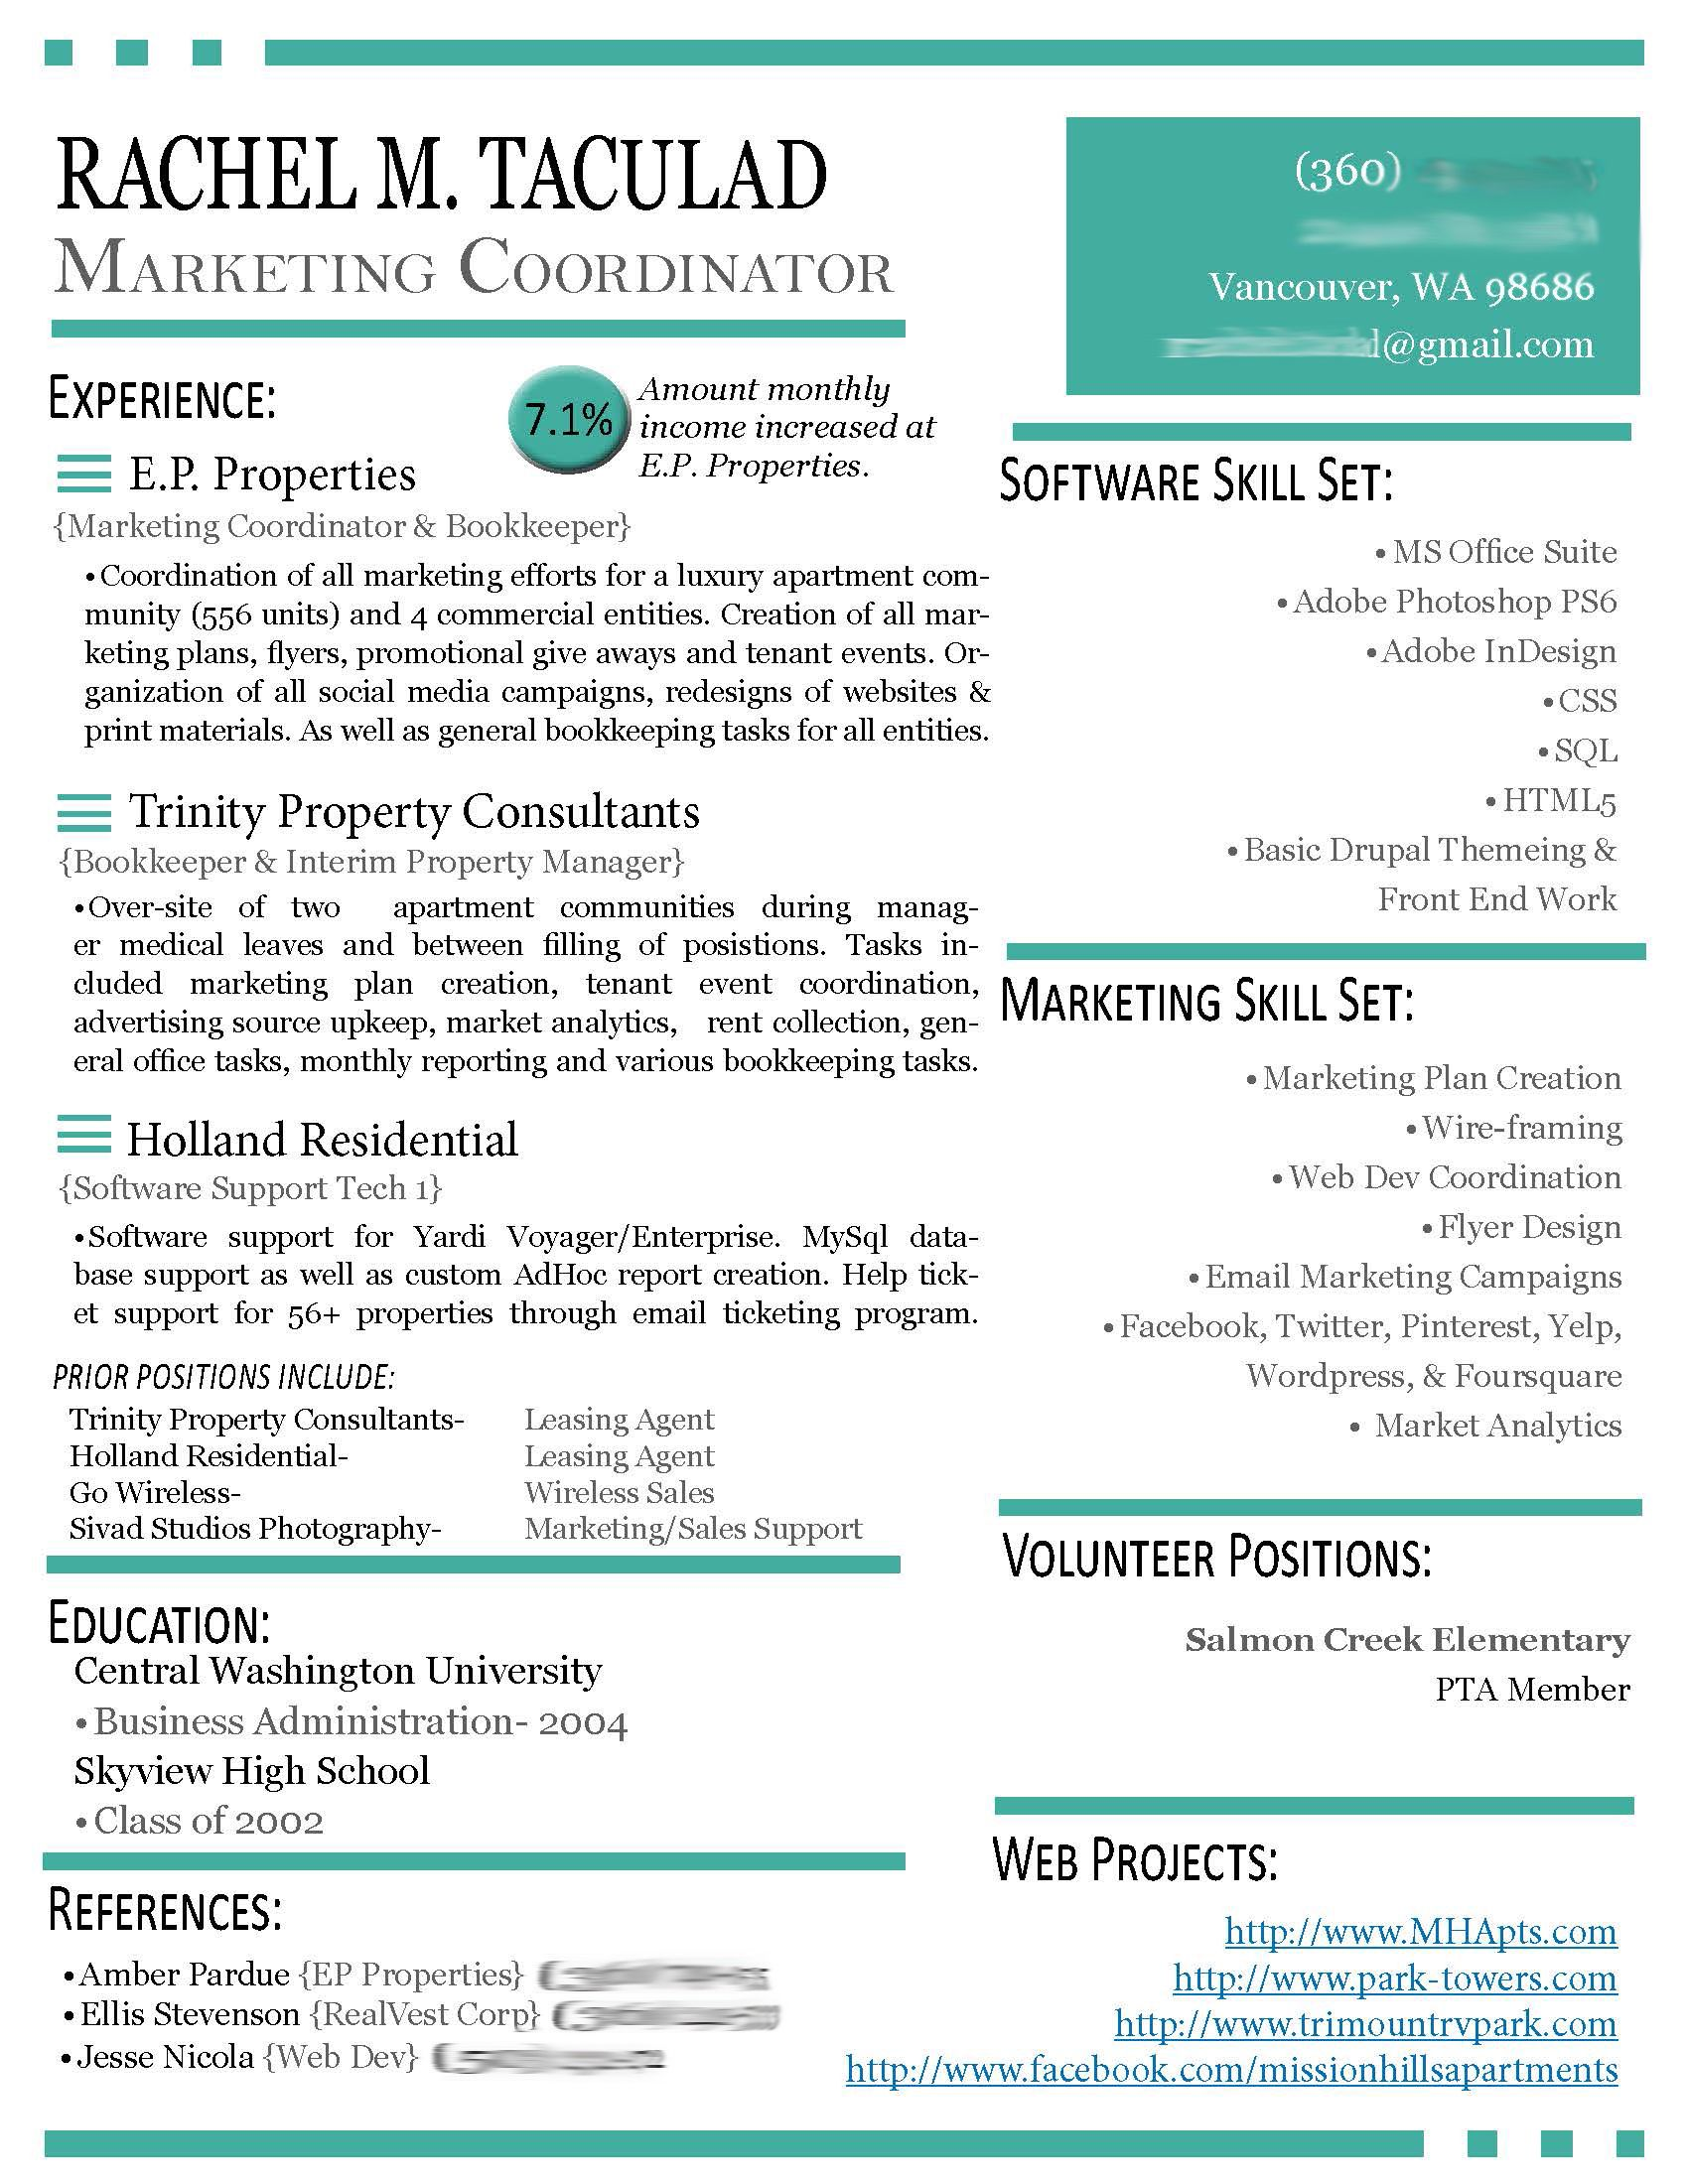 Opposenewapstandardsus  Prepossessing  Images About Work Stuff On Pinterest  Resume Professional  With Fetching  Images About Work Stuff On Pinterest  Resume Professional Resume Template And Resume Templates With Cute Include High School On Resume Also Basic Resume Example In Addition Front Desk Resume Sample And Vitae Resume As Well As Medical Assistant Resume Example Additionally How To Compose A Resume From Pinterestcom With Opposenewapstandardsus  Fetching  Images About Work Stuff On Pinterest  Resume Professional  With Cute  Images About Work Stuff On Pinterest  Resume Professional Resume Template And Resume Templates And Prepossessing Include High School On Resume Also Basic Resume Example In Addition Front Desk Resume Sample From Pinterestcom